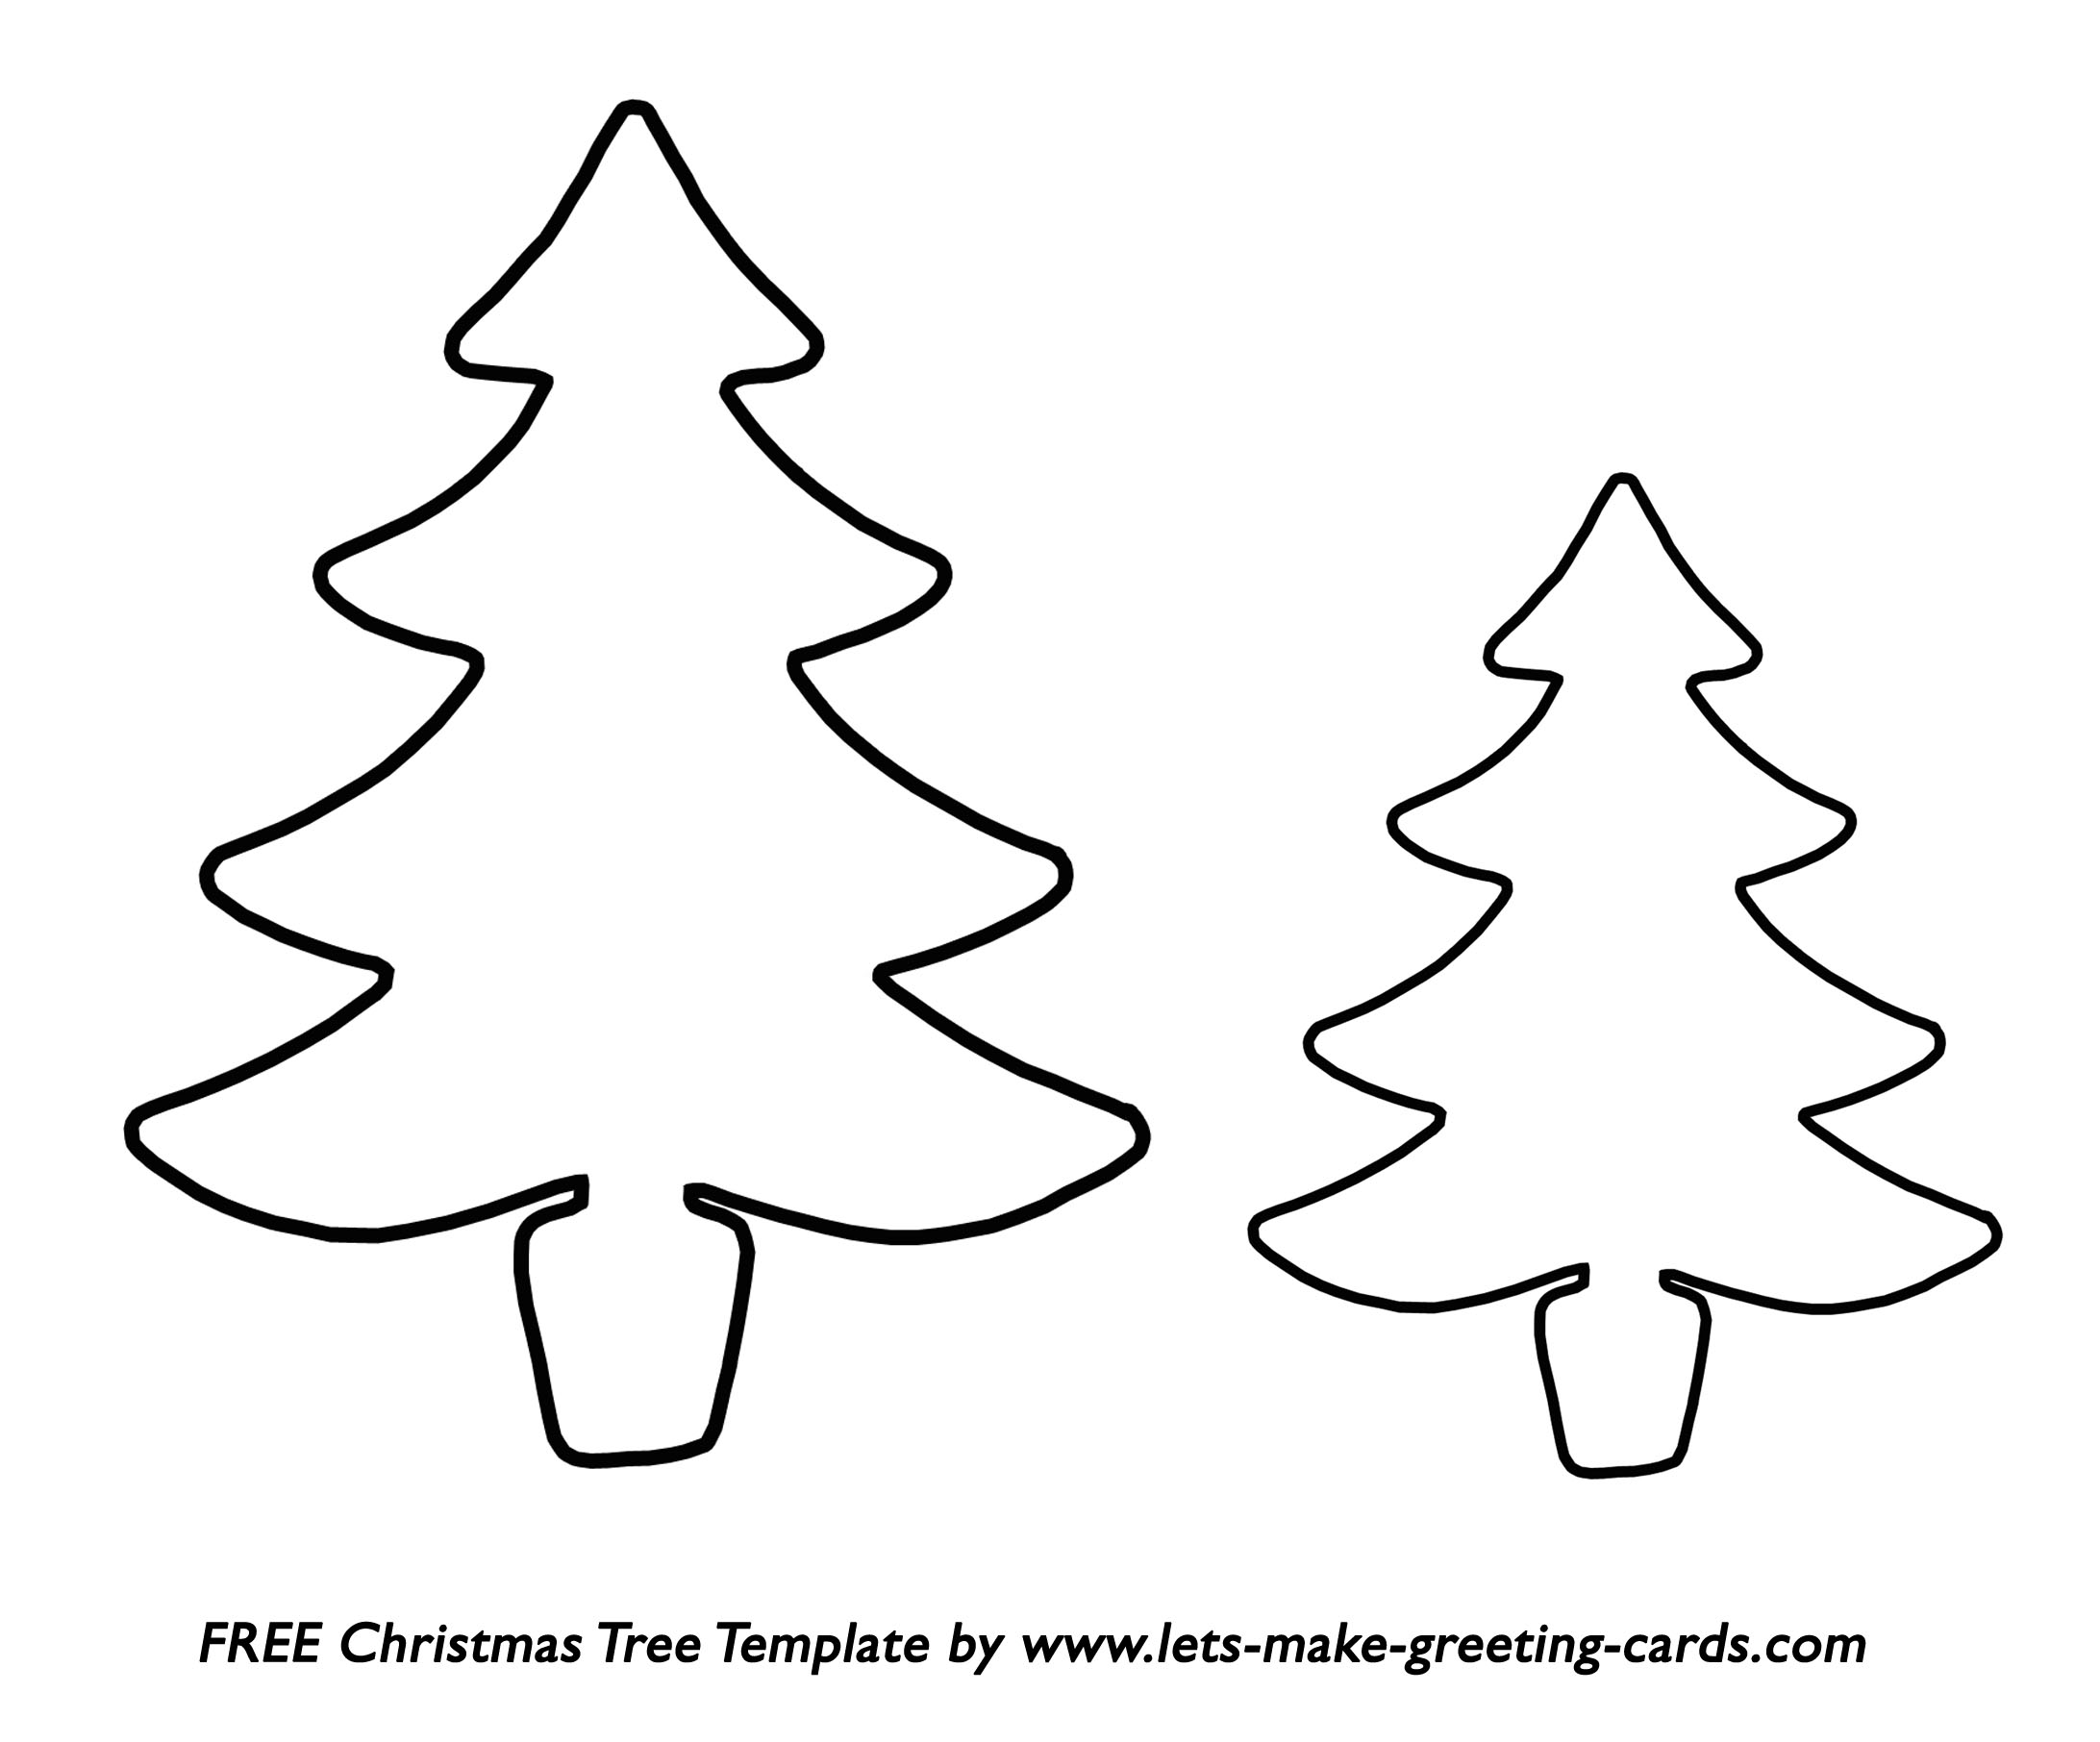 Clipart stencils tree for free.